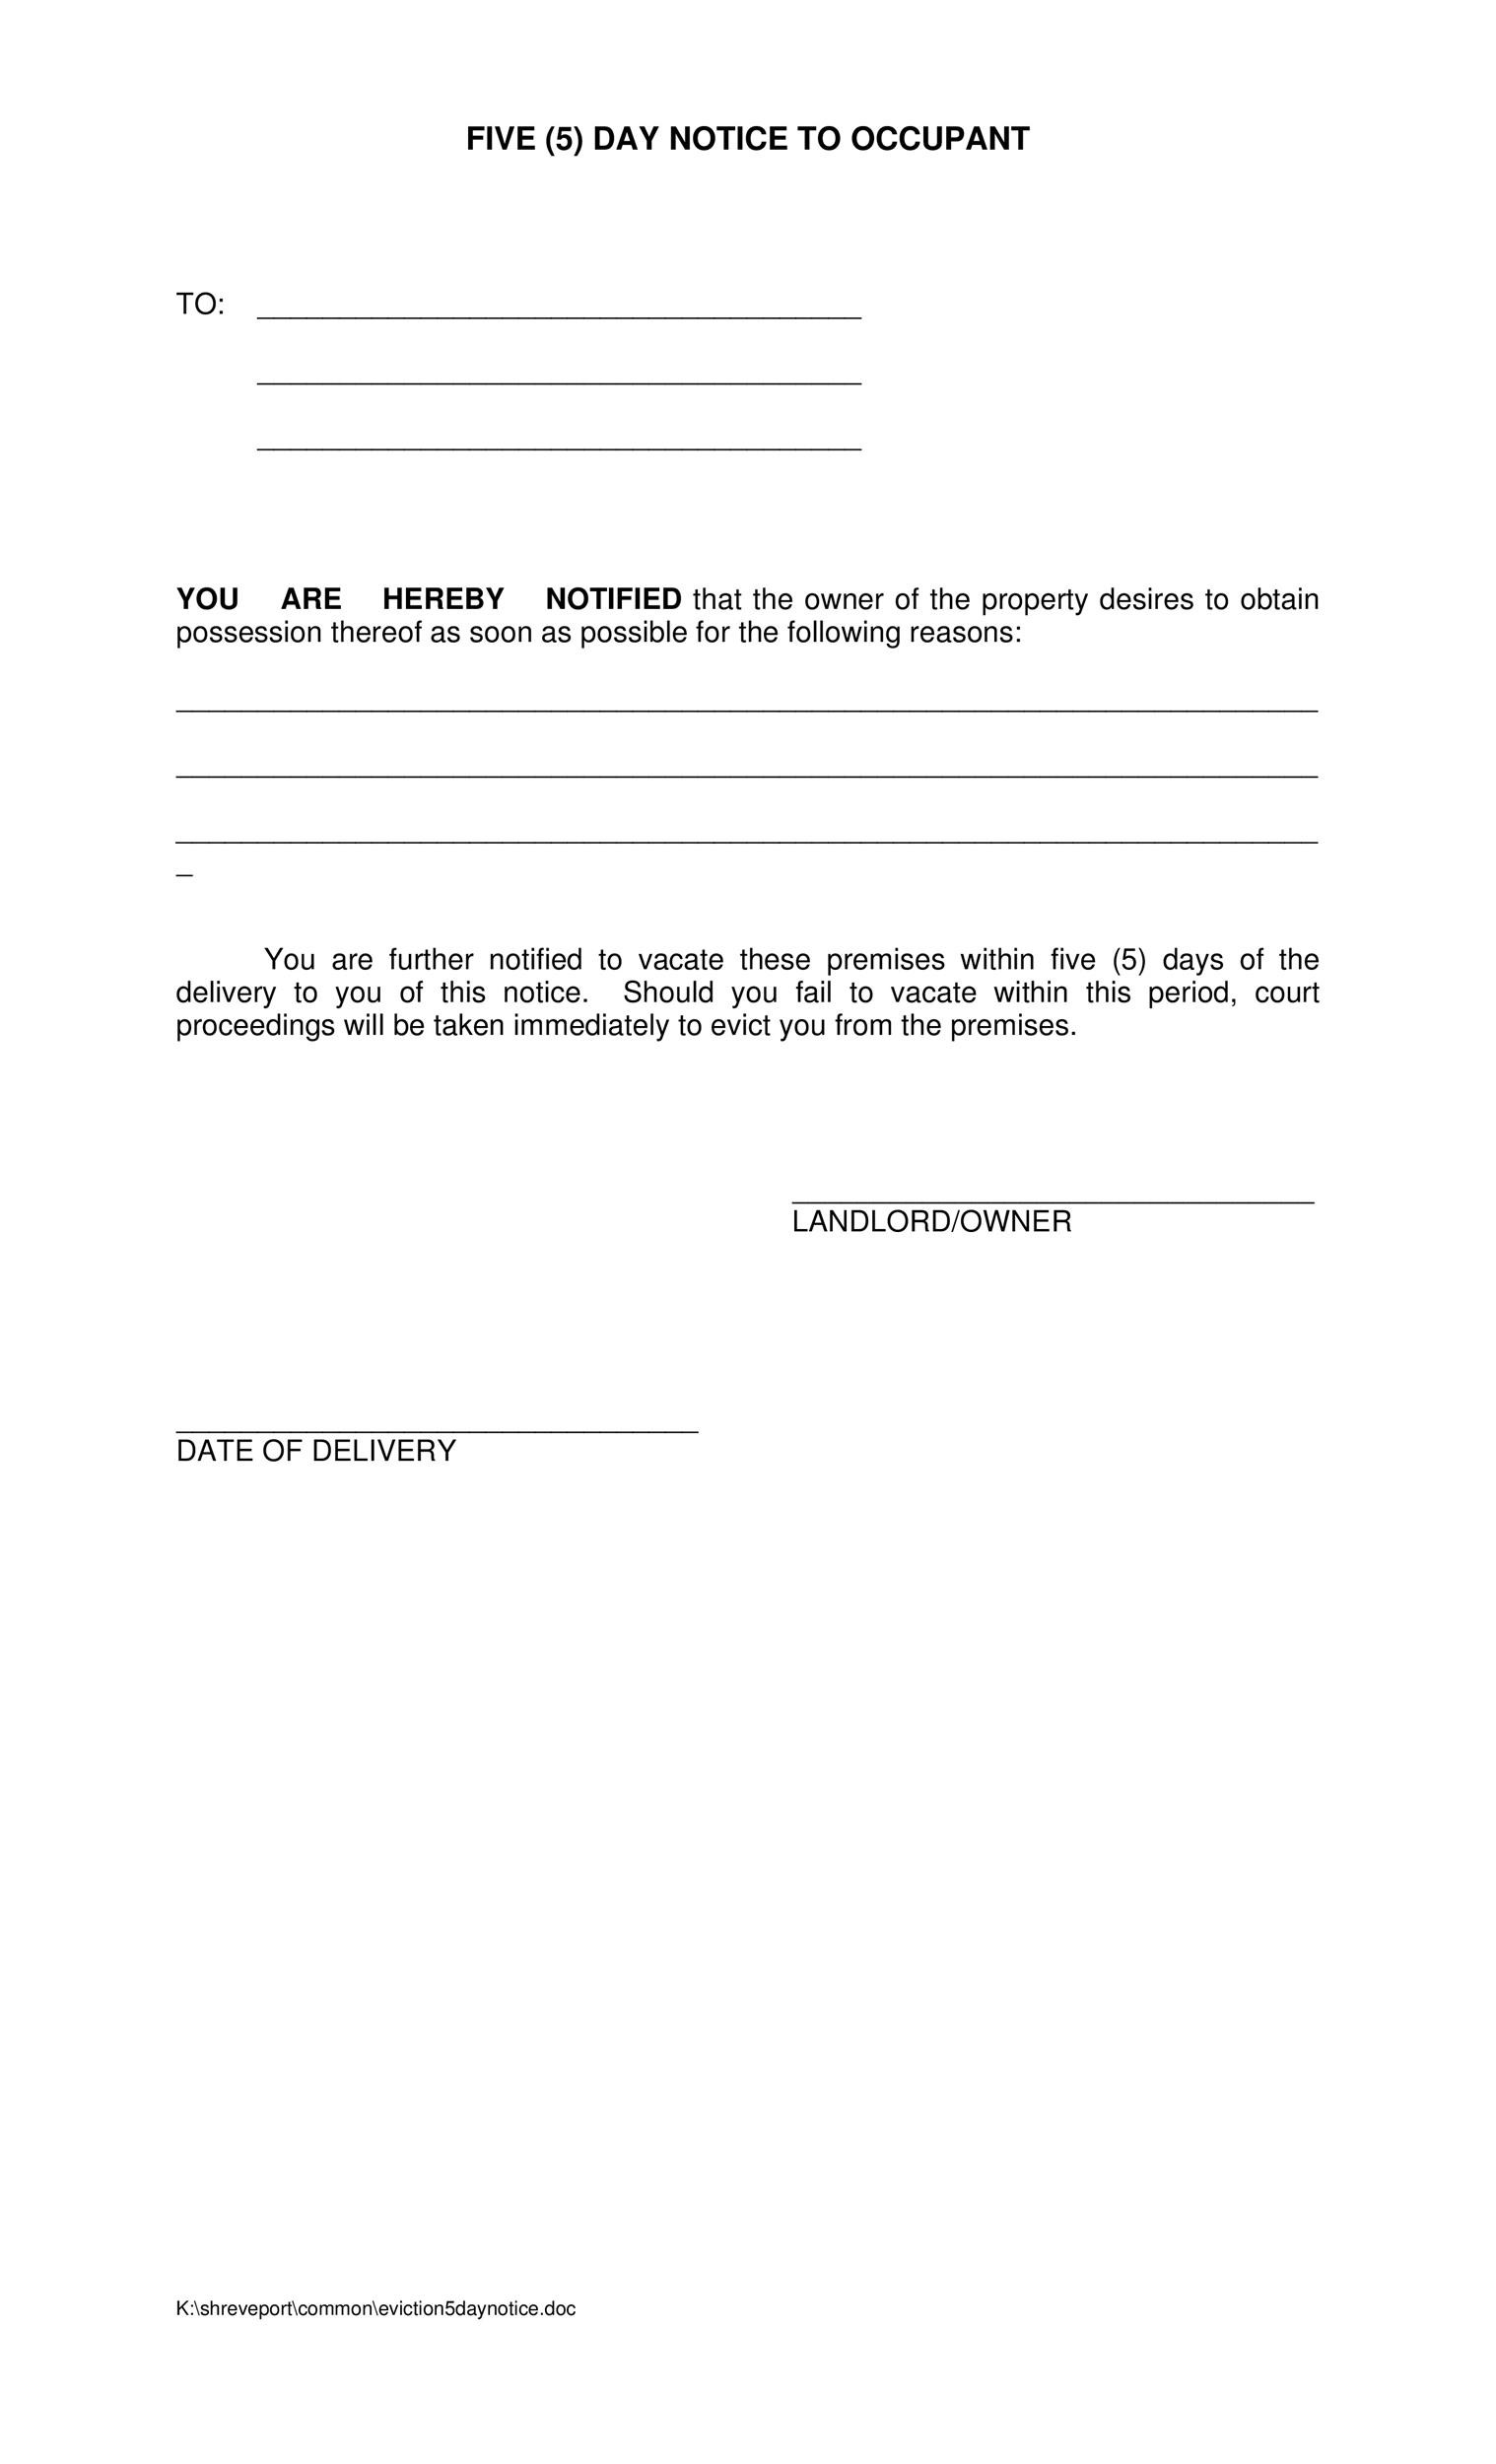 Printable Five Day Notice To Occupant